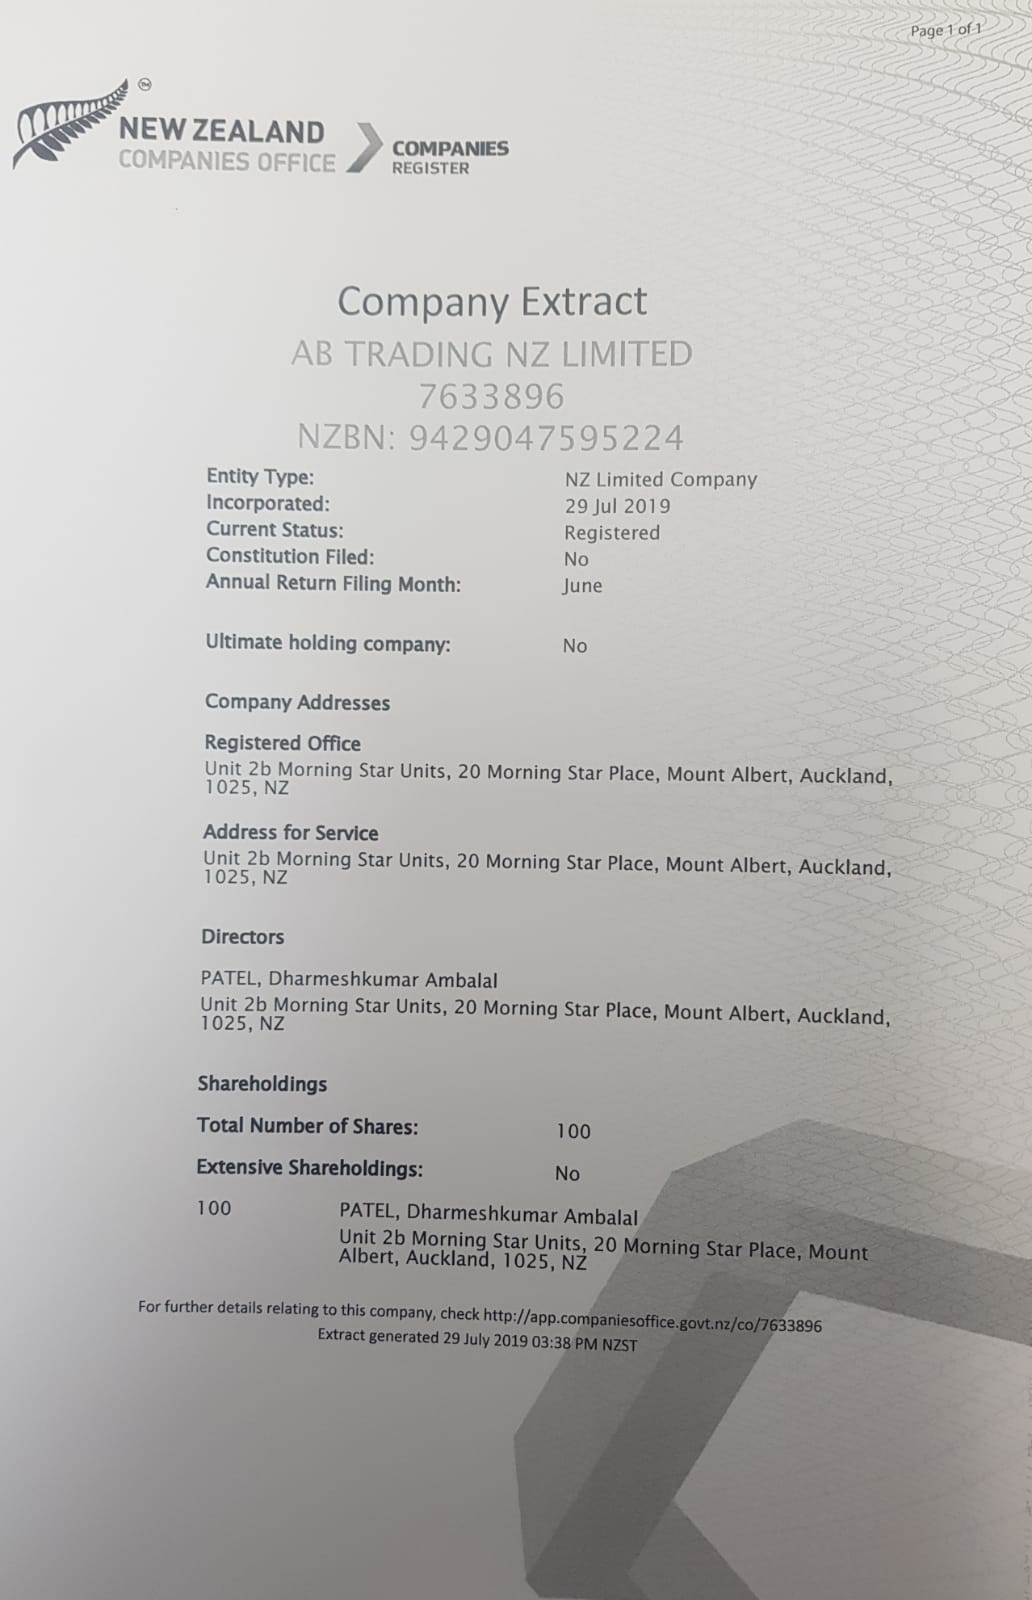 New Zealand Company Registration Certificate